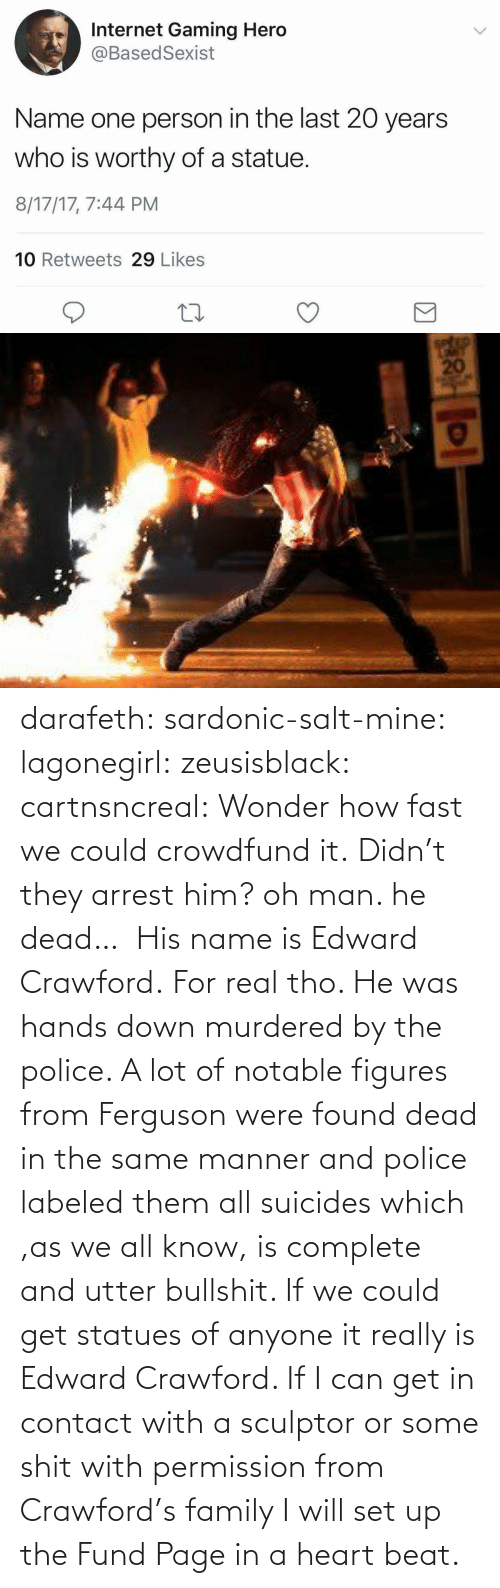 mine: darafeth: sardonic-salt-mine:  lagonegirl:  zeusisblack:  cartnsncreal:   Wonder how fast we could crowdfund it.    Didn't they arrest him?  oh man. he dead…   His name is Edward Crawford.   For real tho. He was hands down murdered by the police. A lot of notable figures from Ferguson were found dead in the same manner and police labeled them all suicides which ,as we all know, is complete and utter bullshit.  If we could get statues of anyone it really is Edward Crawford. If I can get in contact with a sculptor or some shit with permission from Crawford's family I will set up the Fund Page in a heart beat.